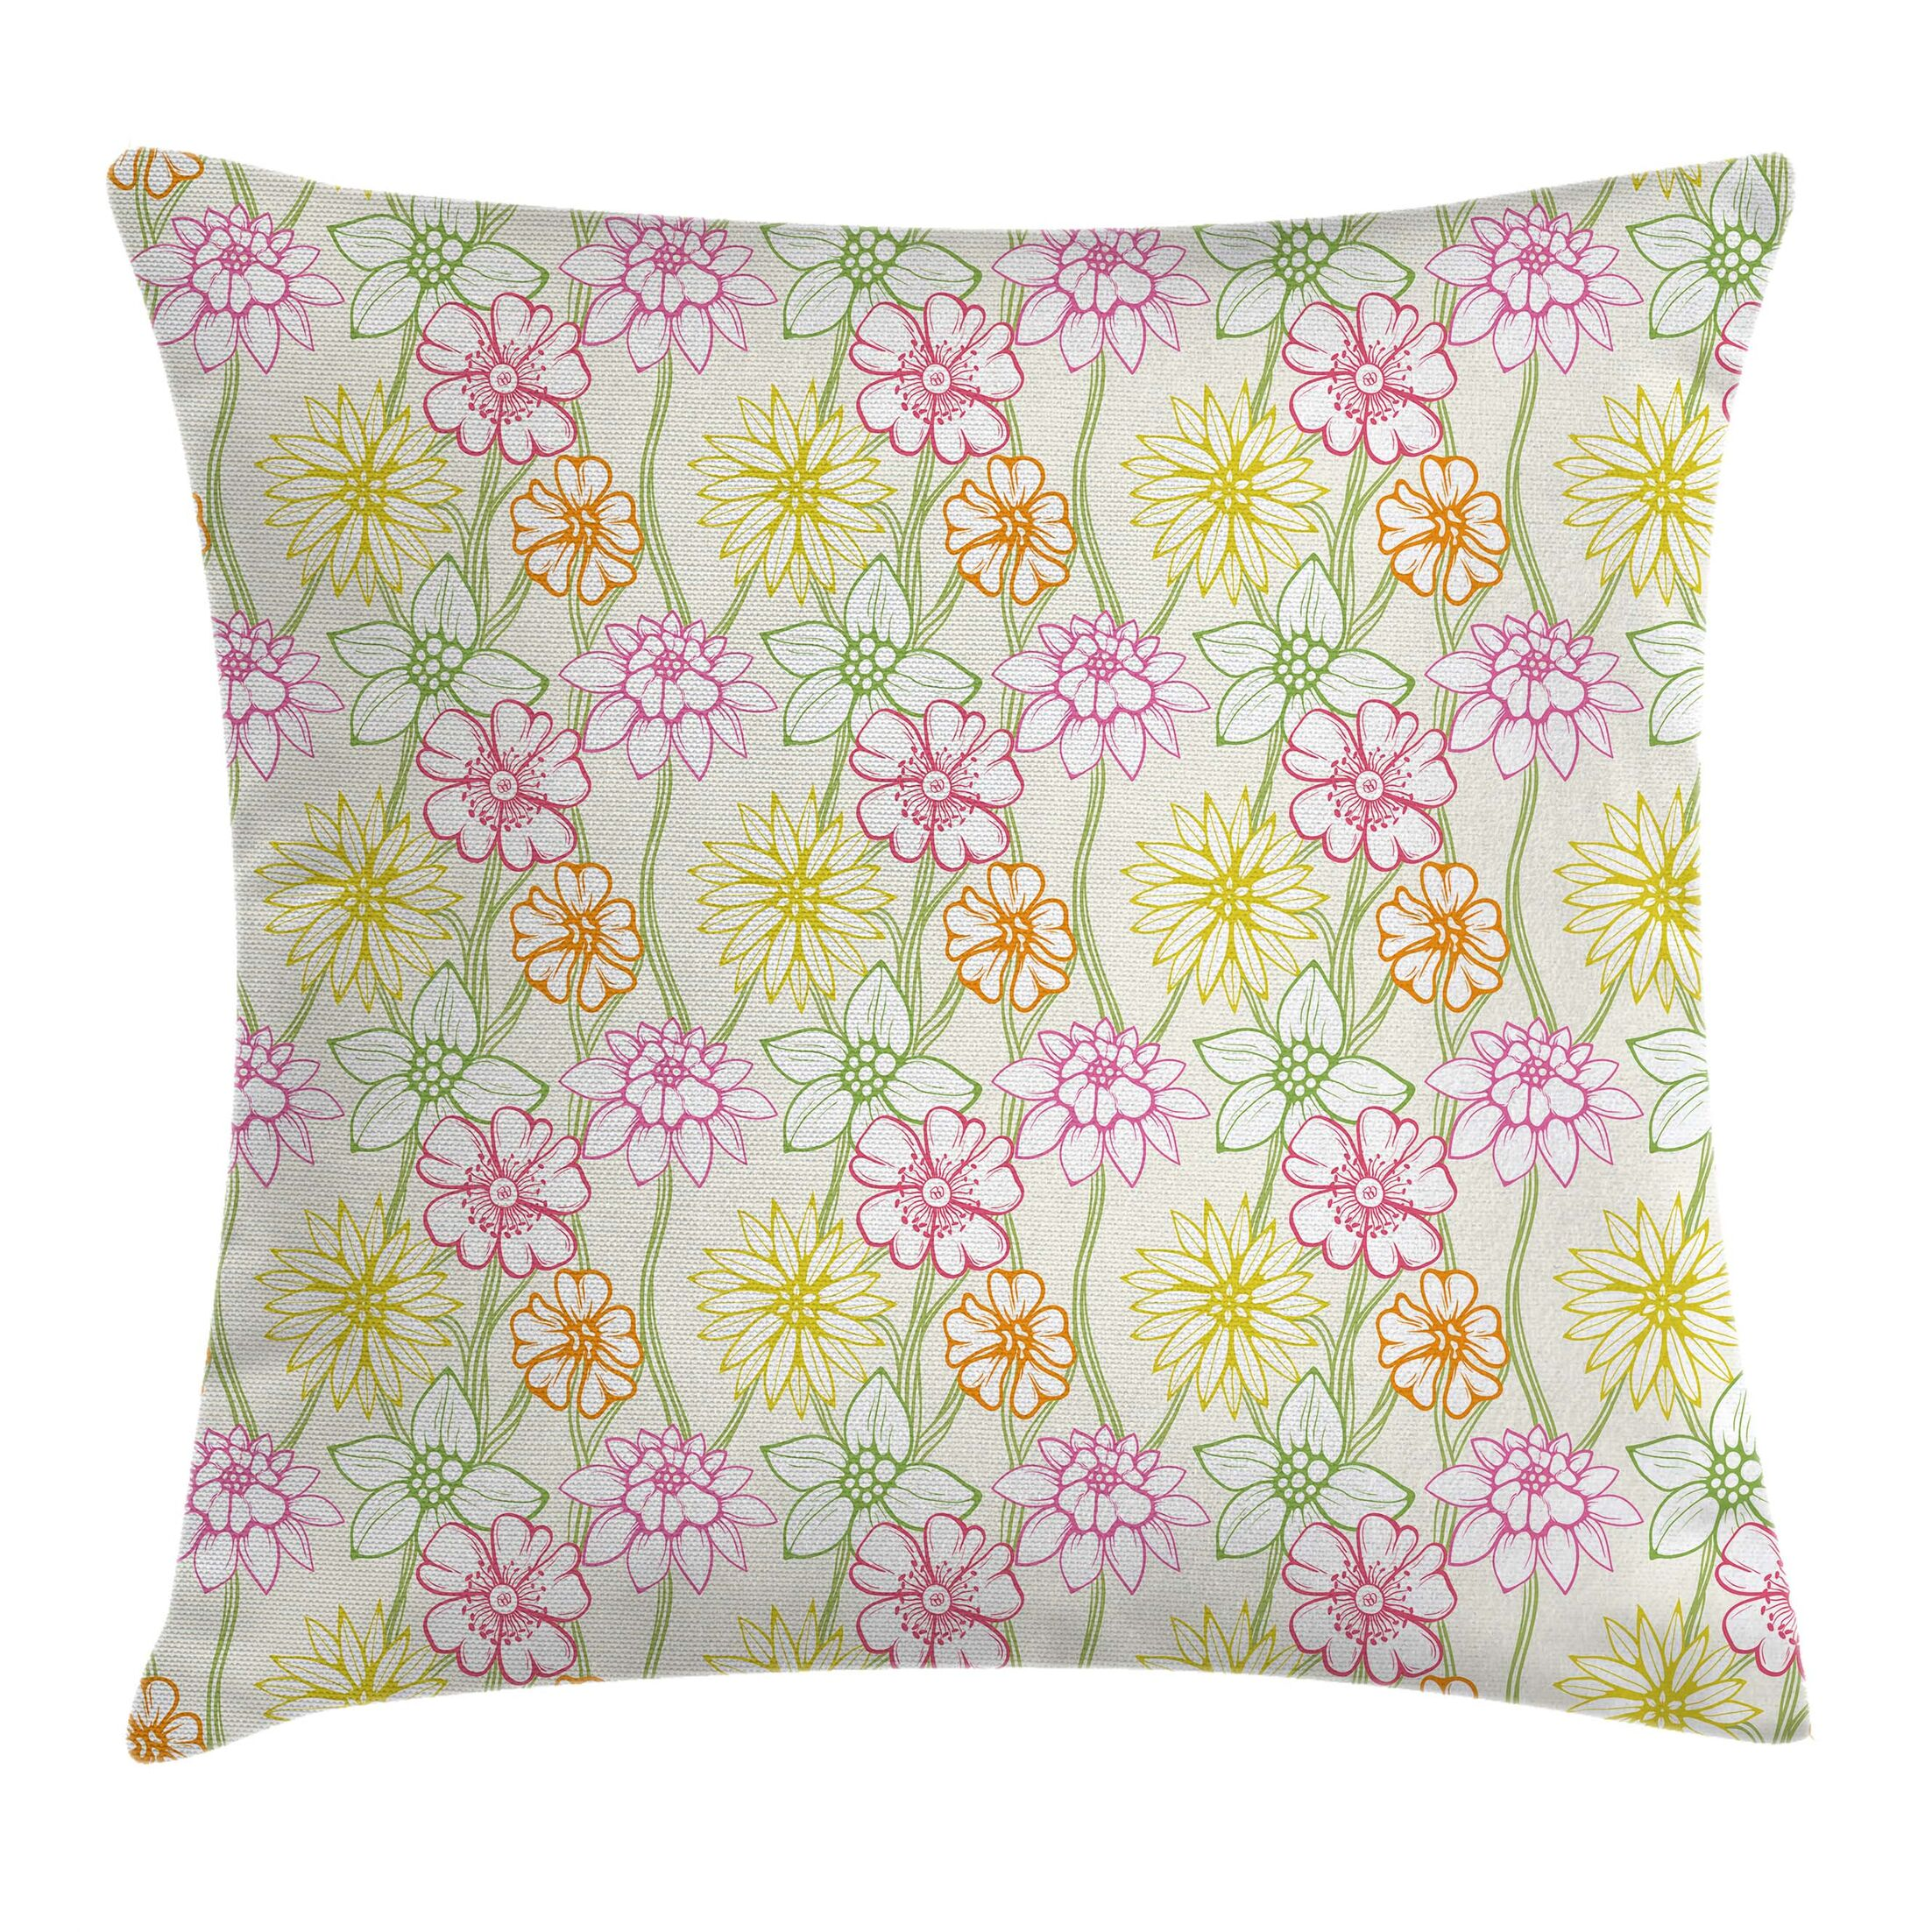 Waterproof Floral Graphic Print Square Pillow Cover with Zipper Size: 16